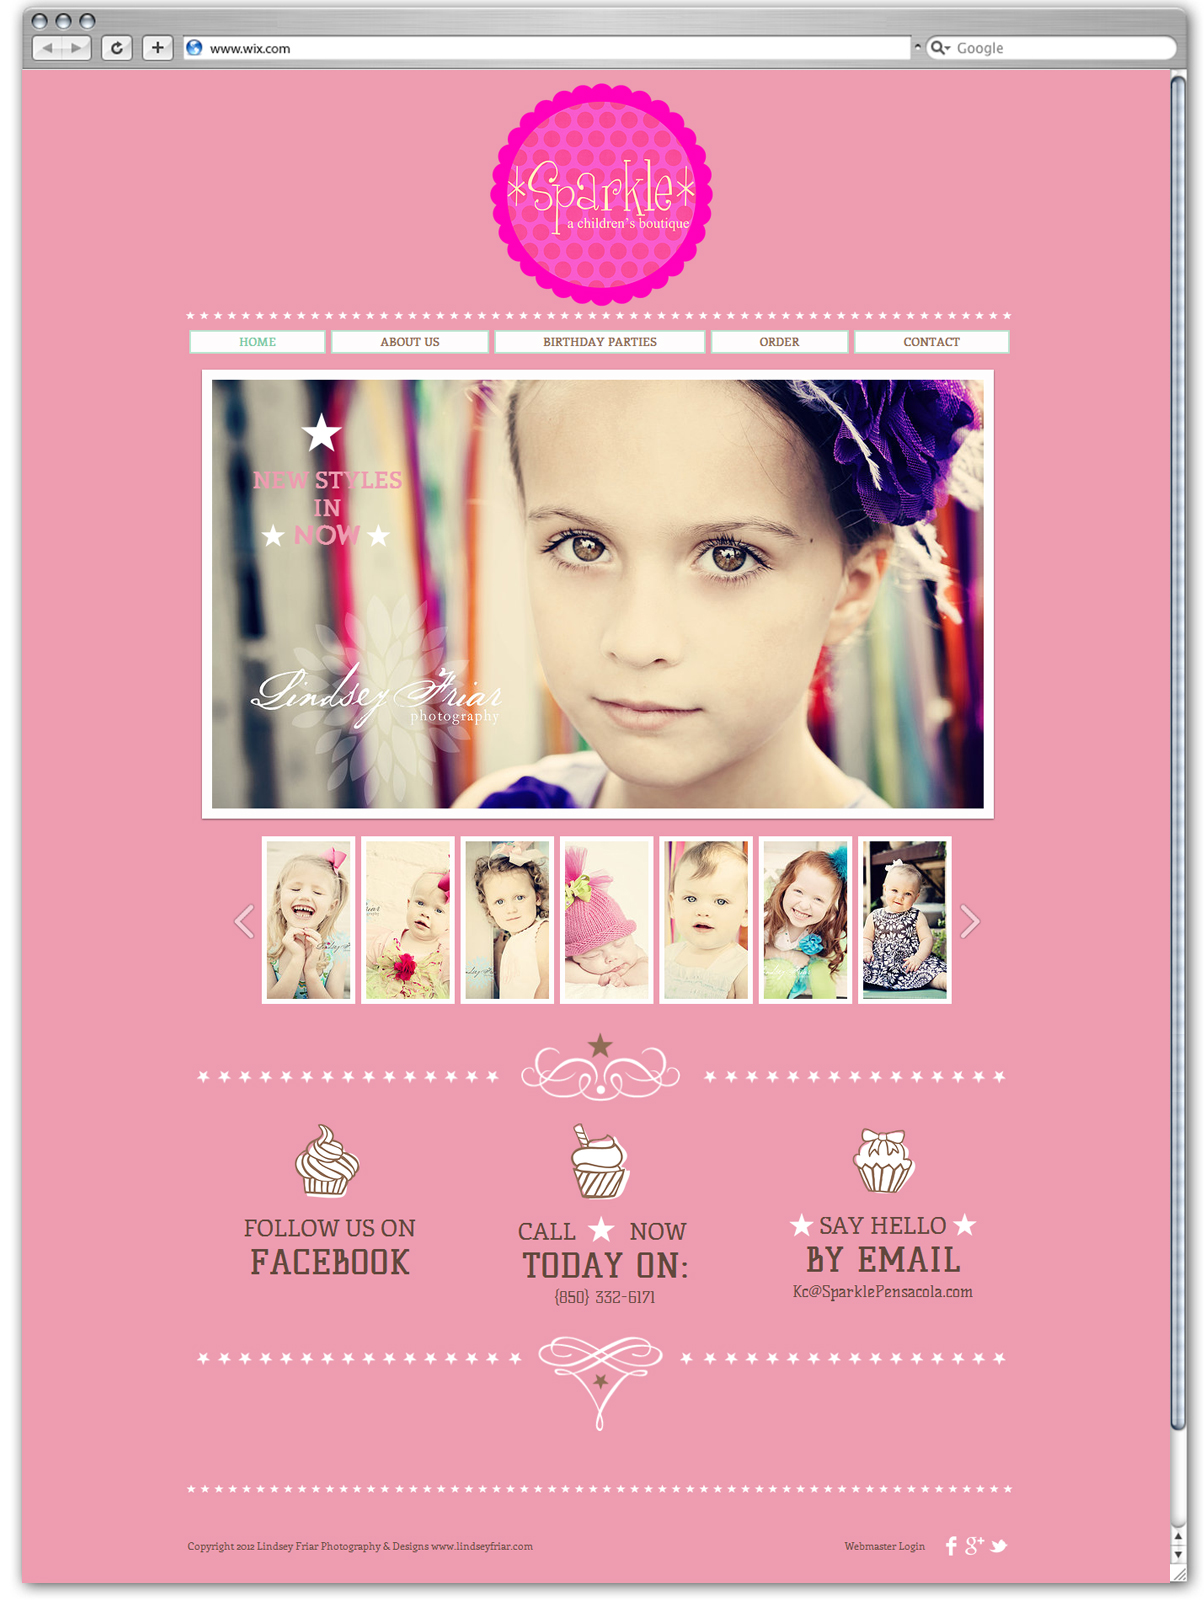 Sparkle | a Children's Botique